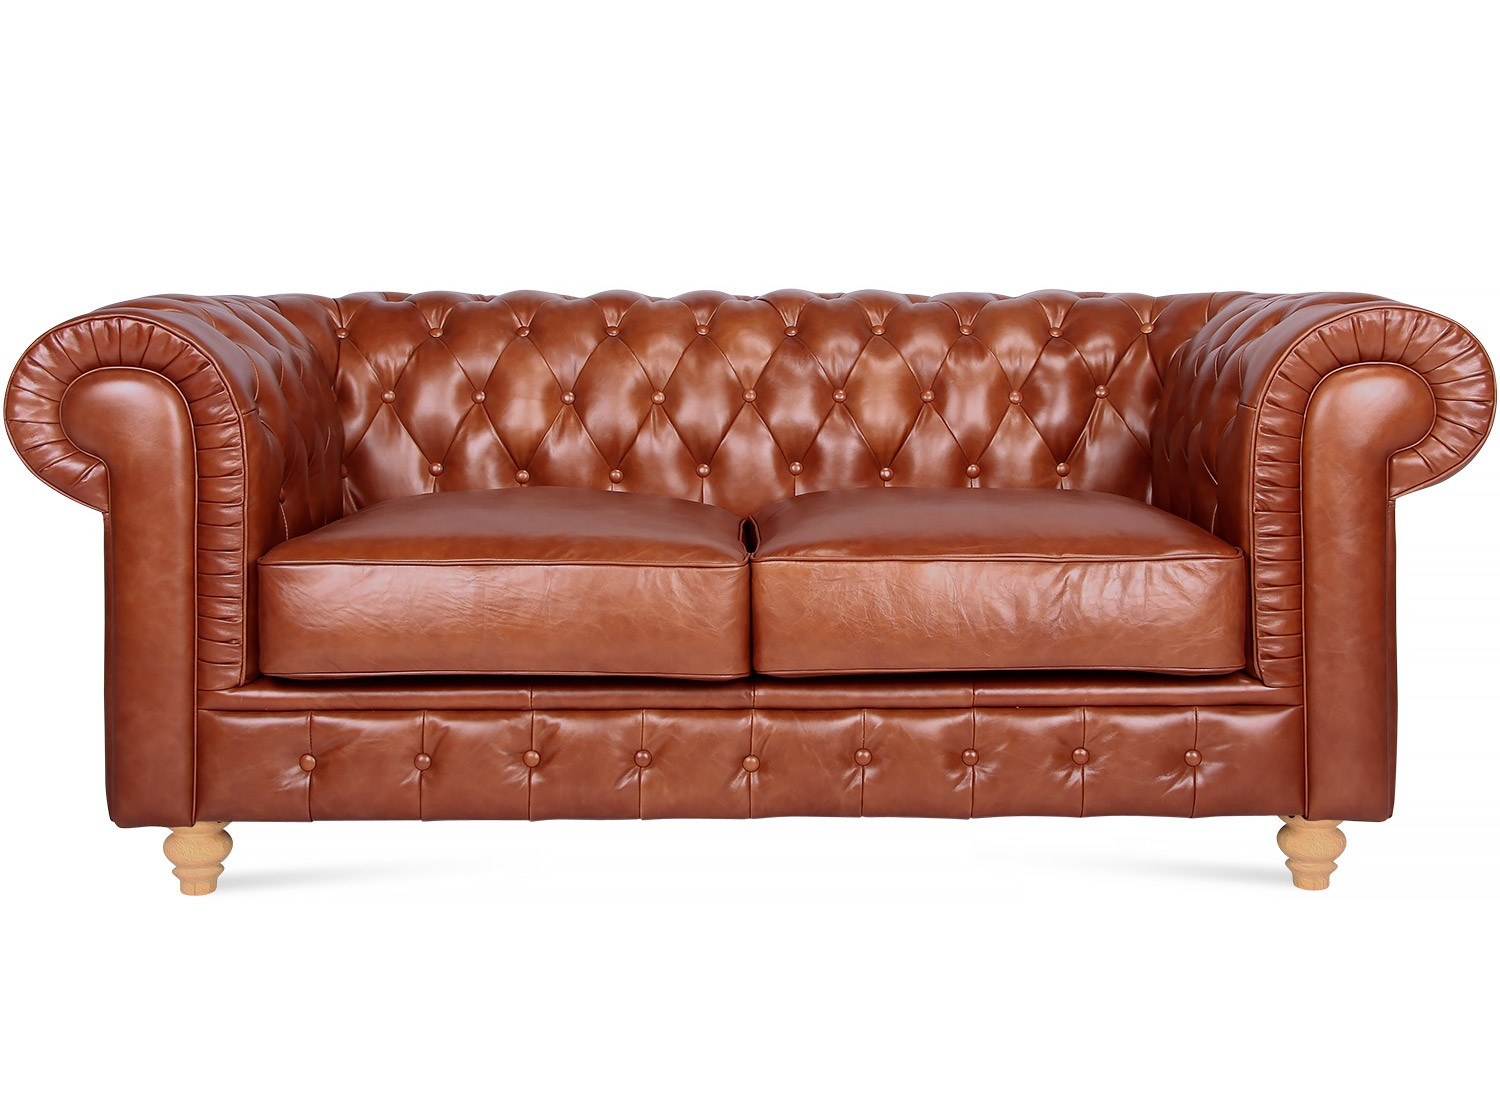 Chesterfield Lounge Chesterfield Sofa 2 Seater